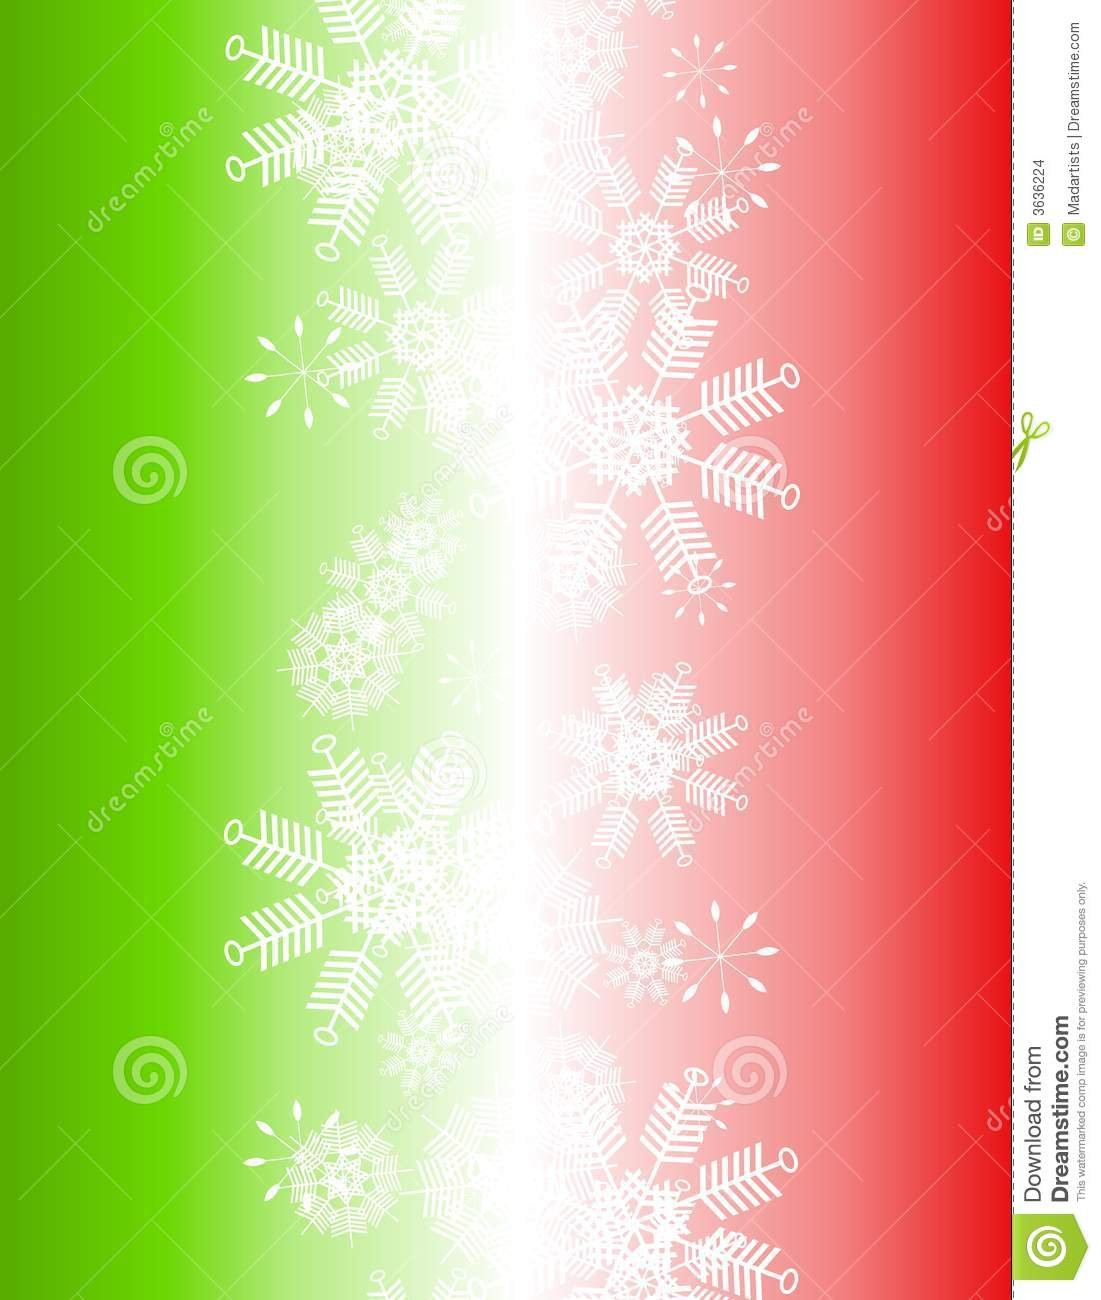 Gradient Red Green Christmas Snowflake Background Stock Images - Image ...